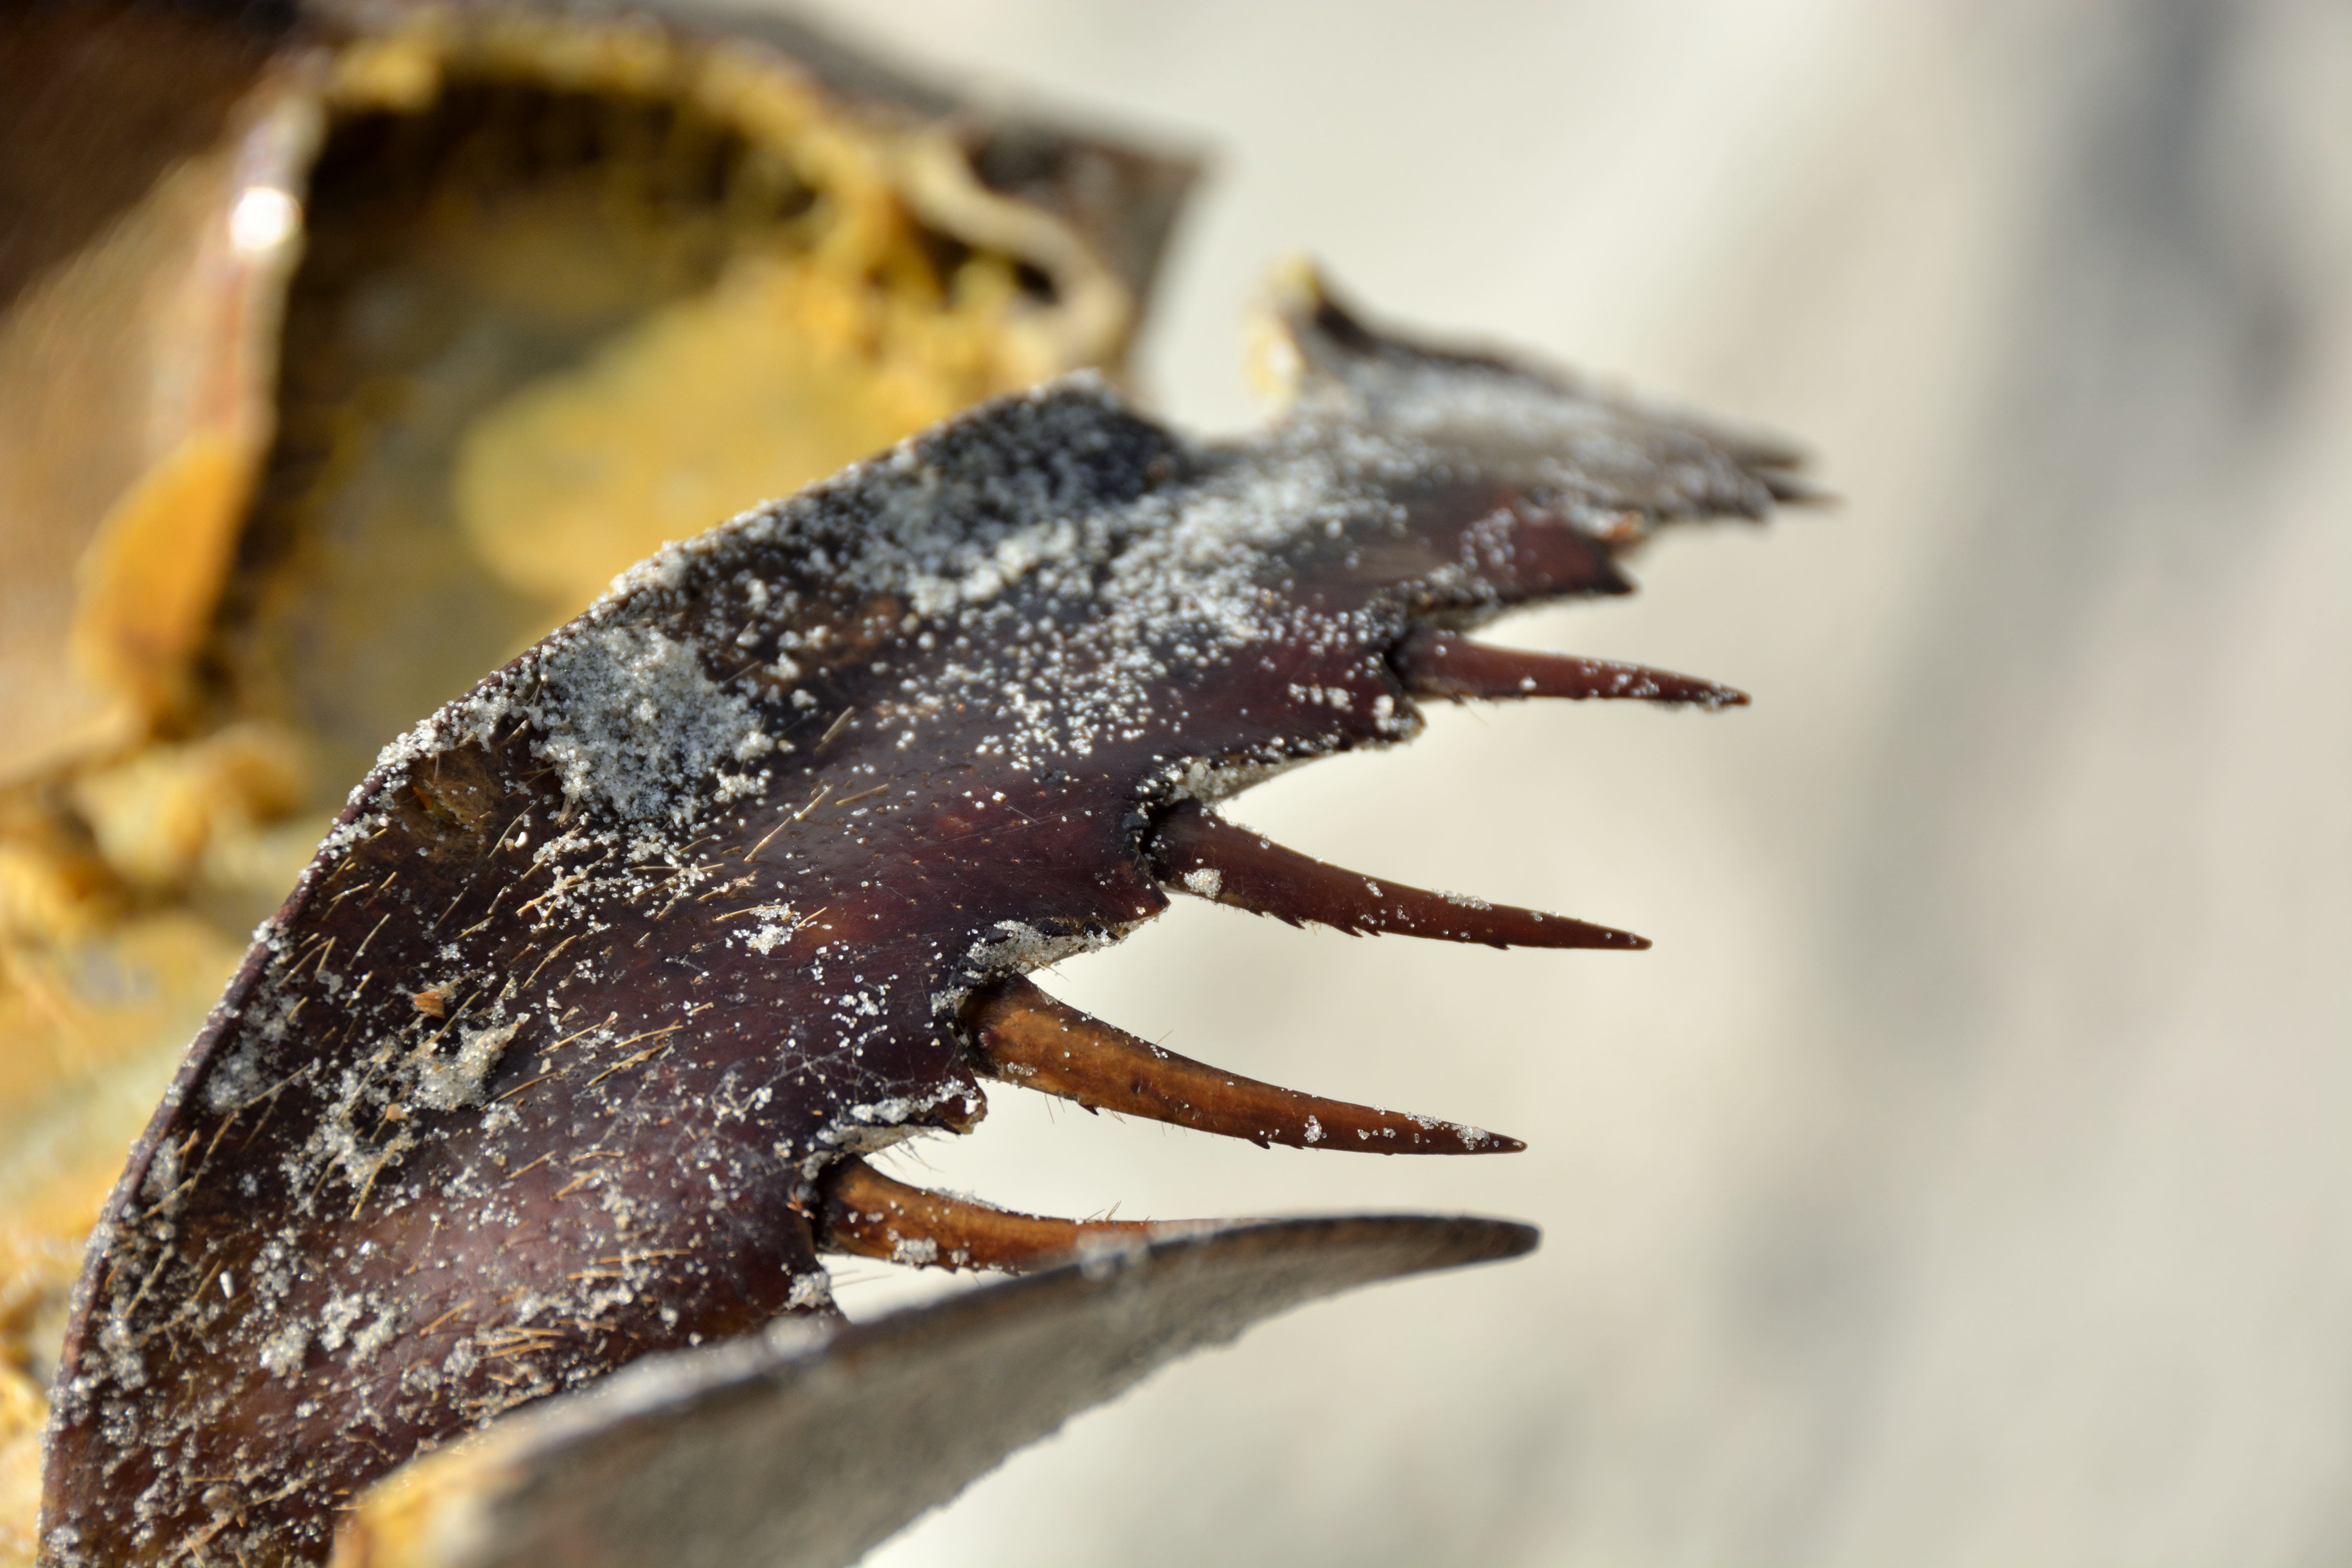 Free stock photo of sand, reptile, claws, Carcus